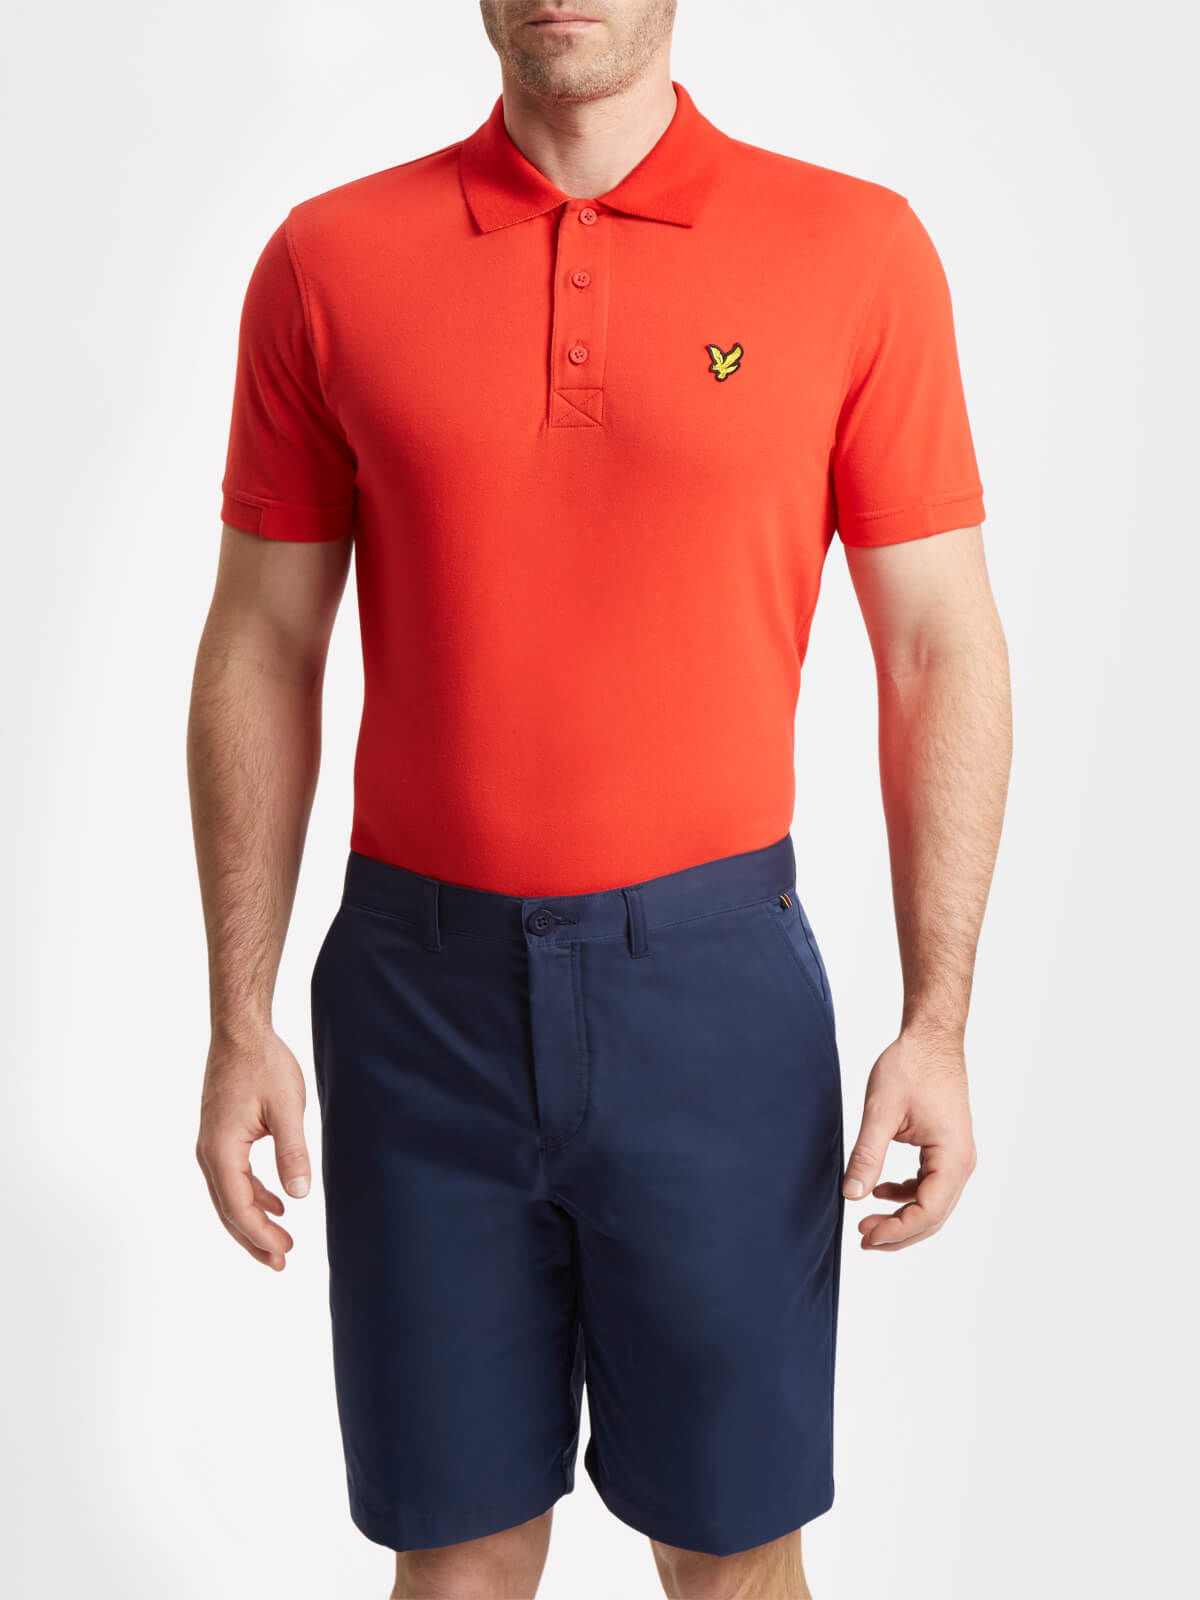 Lyle and Scott Pavilion Red Kelso Golf Polo Shirt